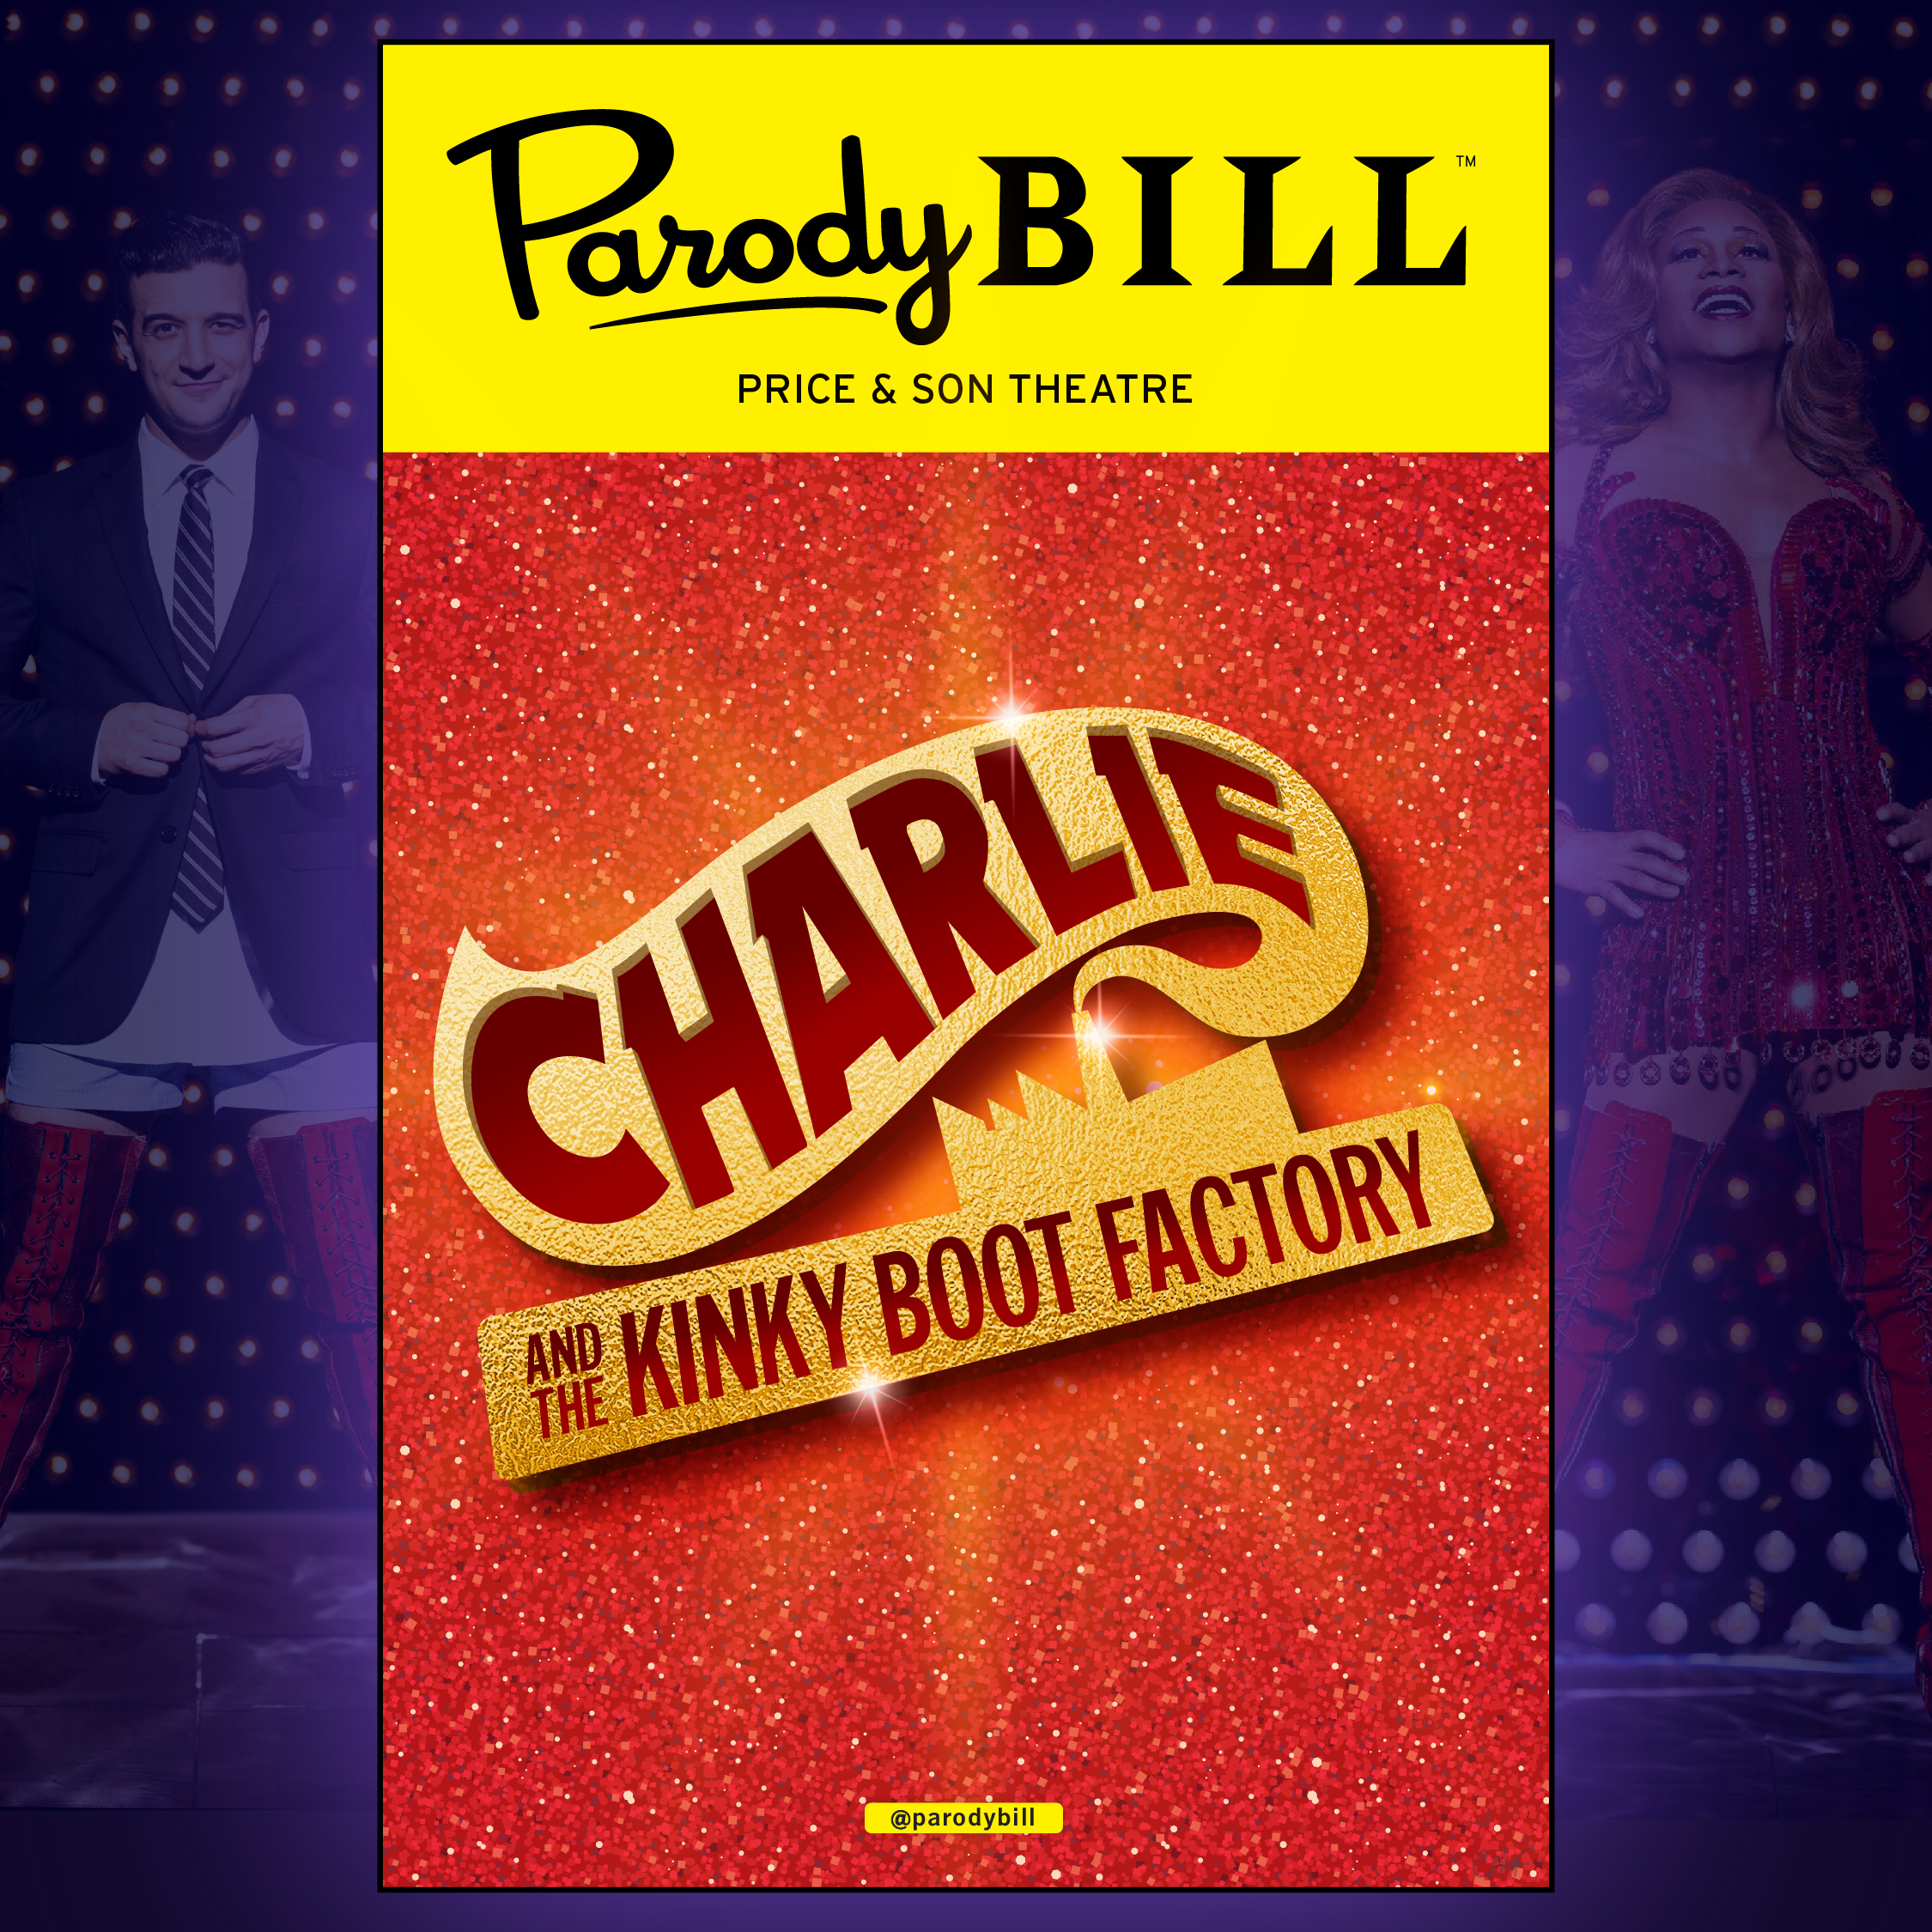 CHARLIE AND THE KINKY BOOT FACTORY